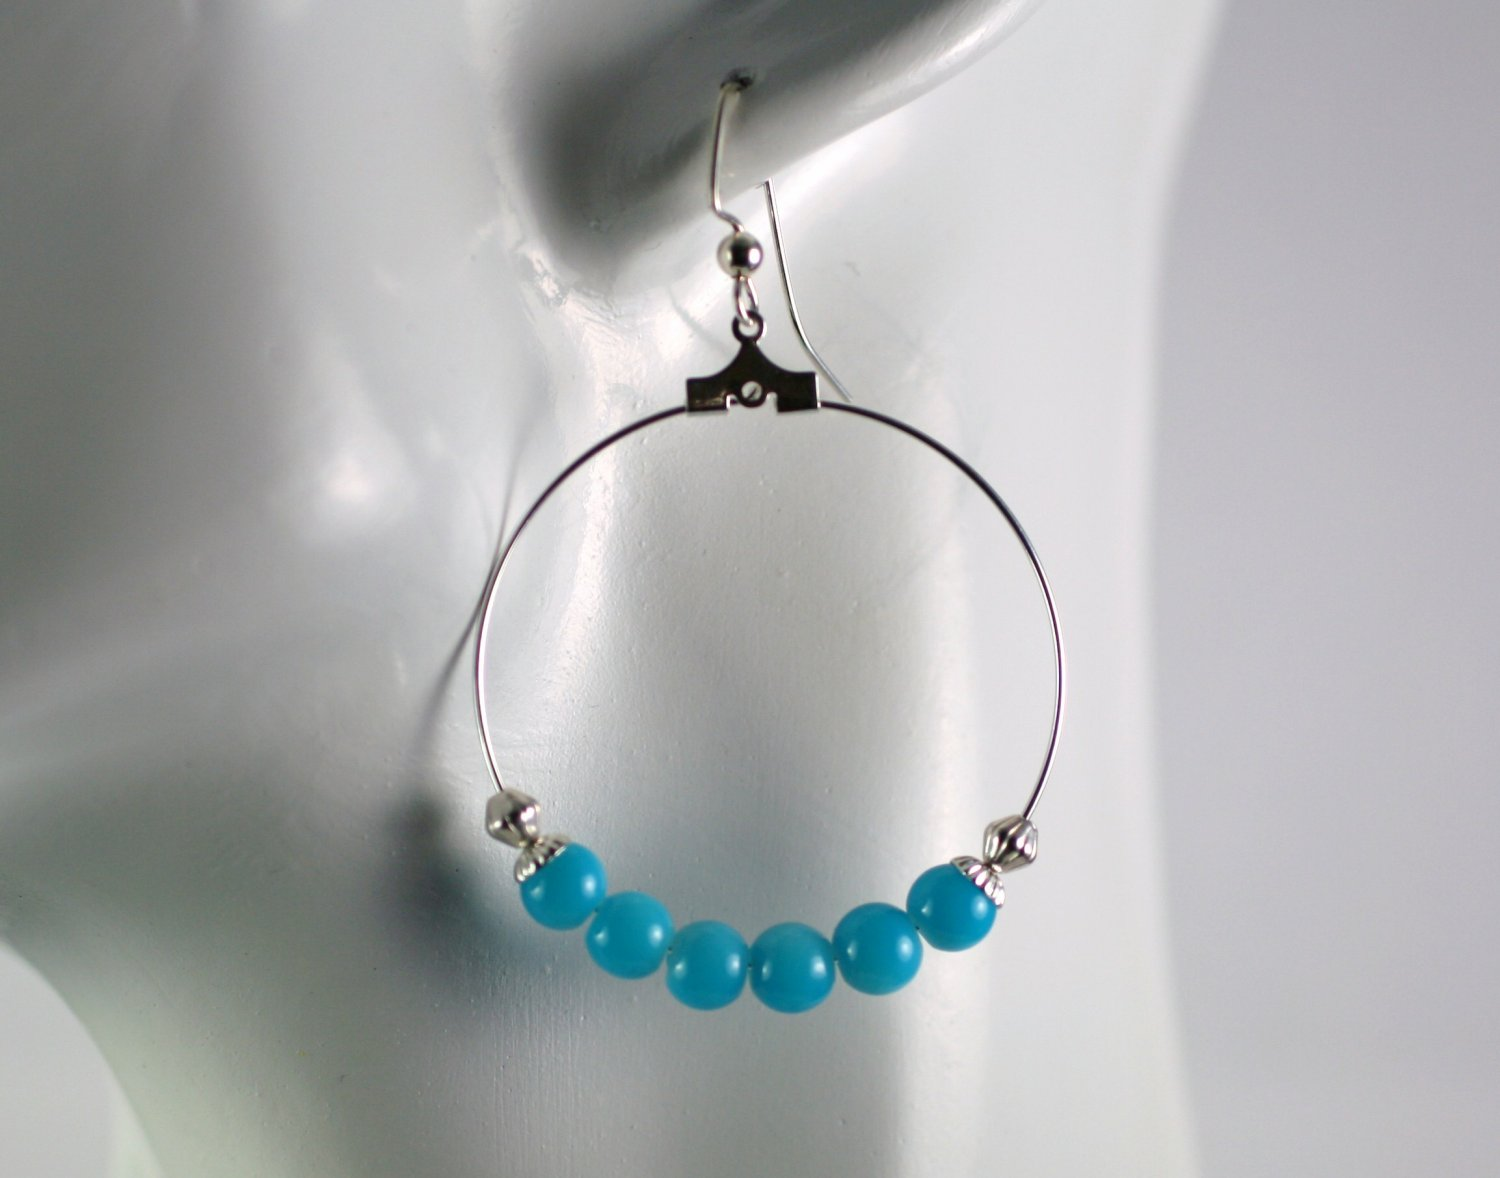 Silver Hoop Earrings with Blue Glass Beads 1.5 in.  Handcrafted Jewelry